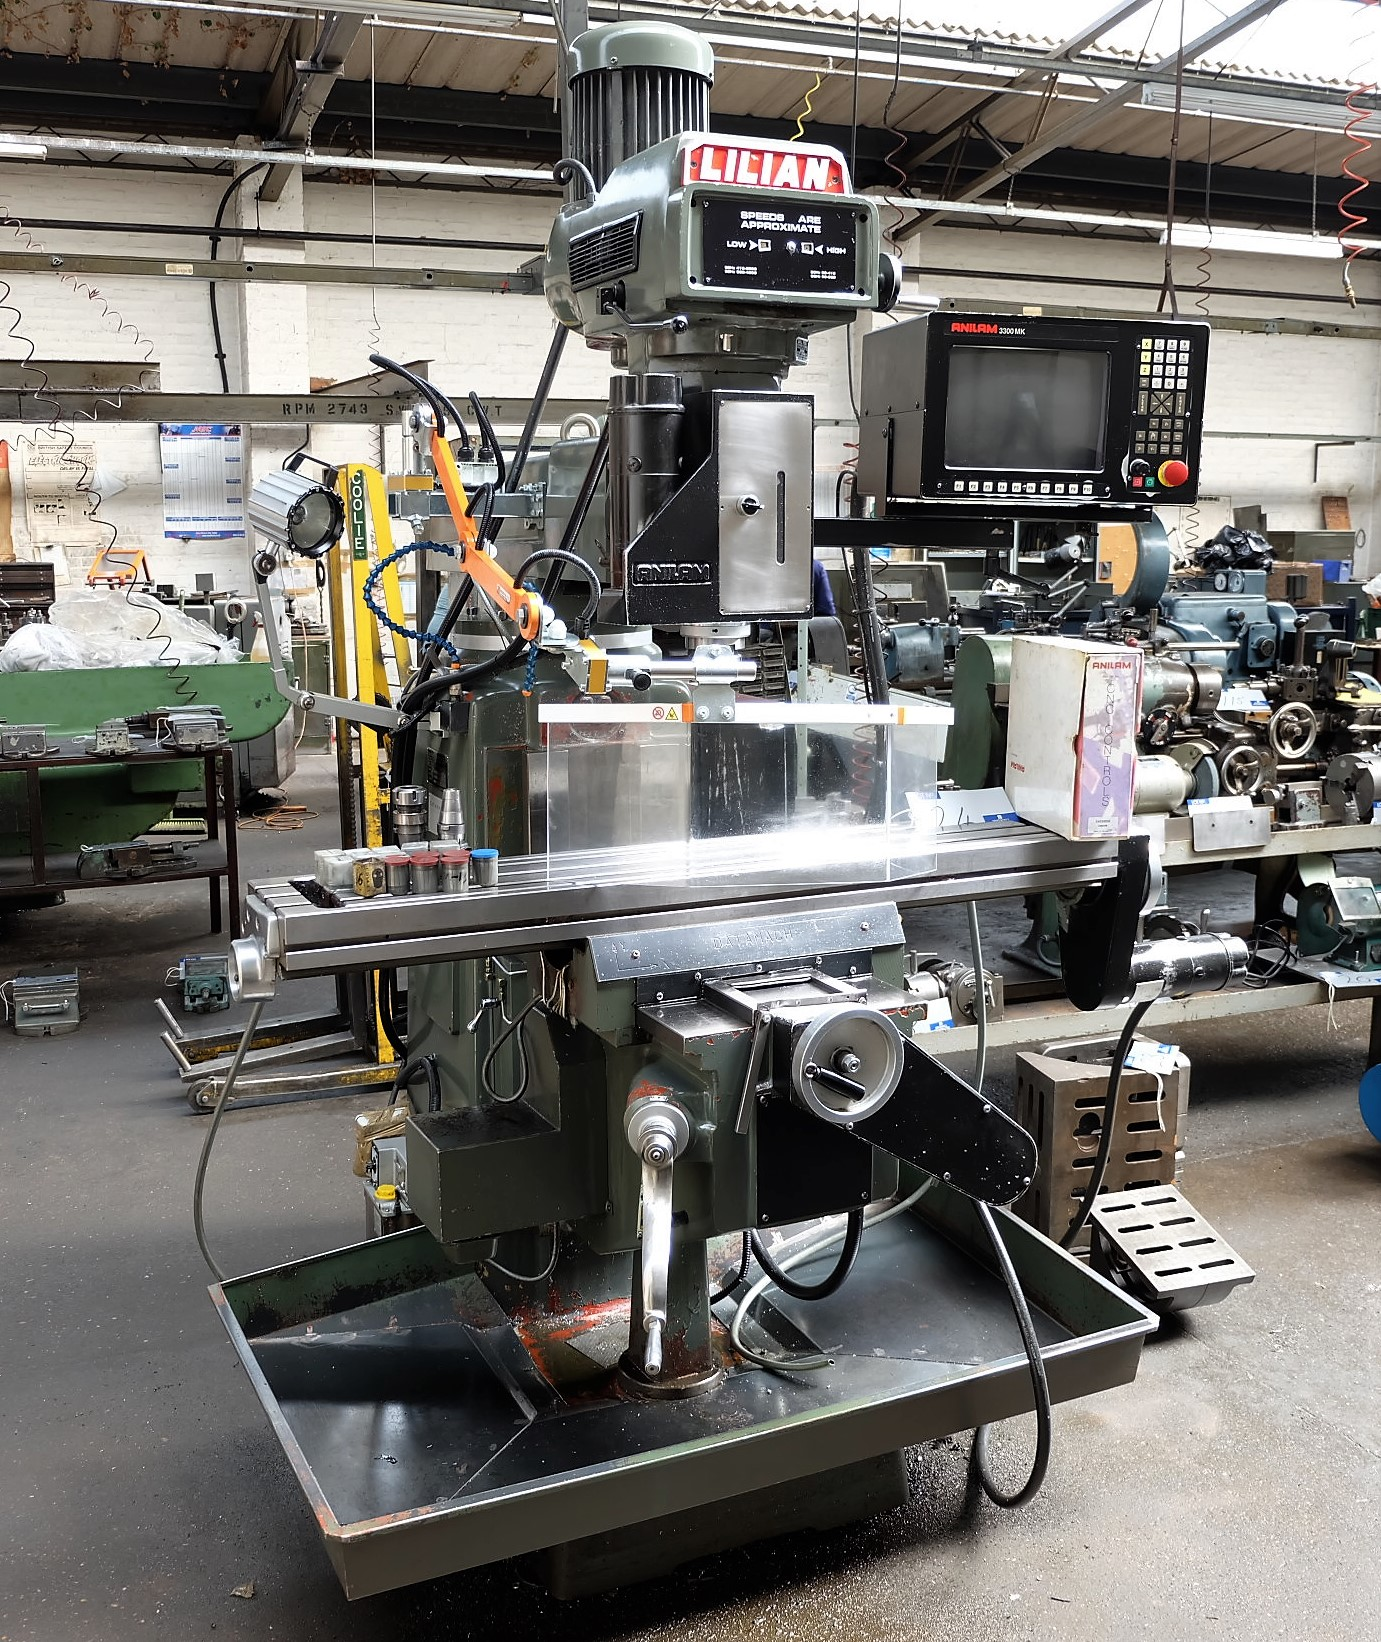 Lot 24 - A LILIAN Model 5VH CNC Vertical Turret Head Milling Machine No.9865 (2000), 54in x 10in table